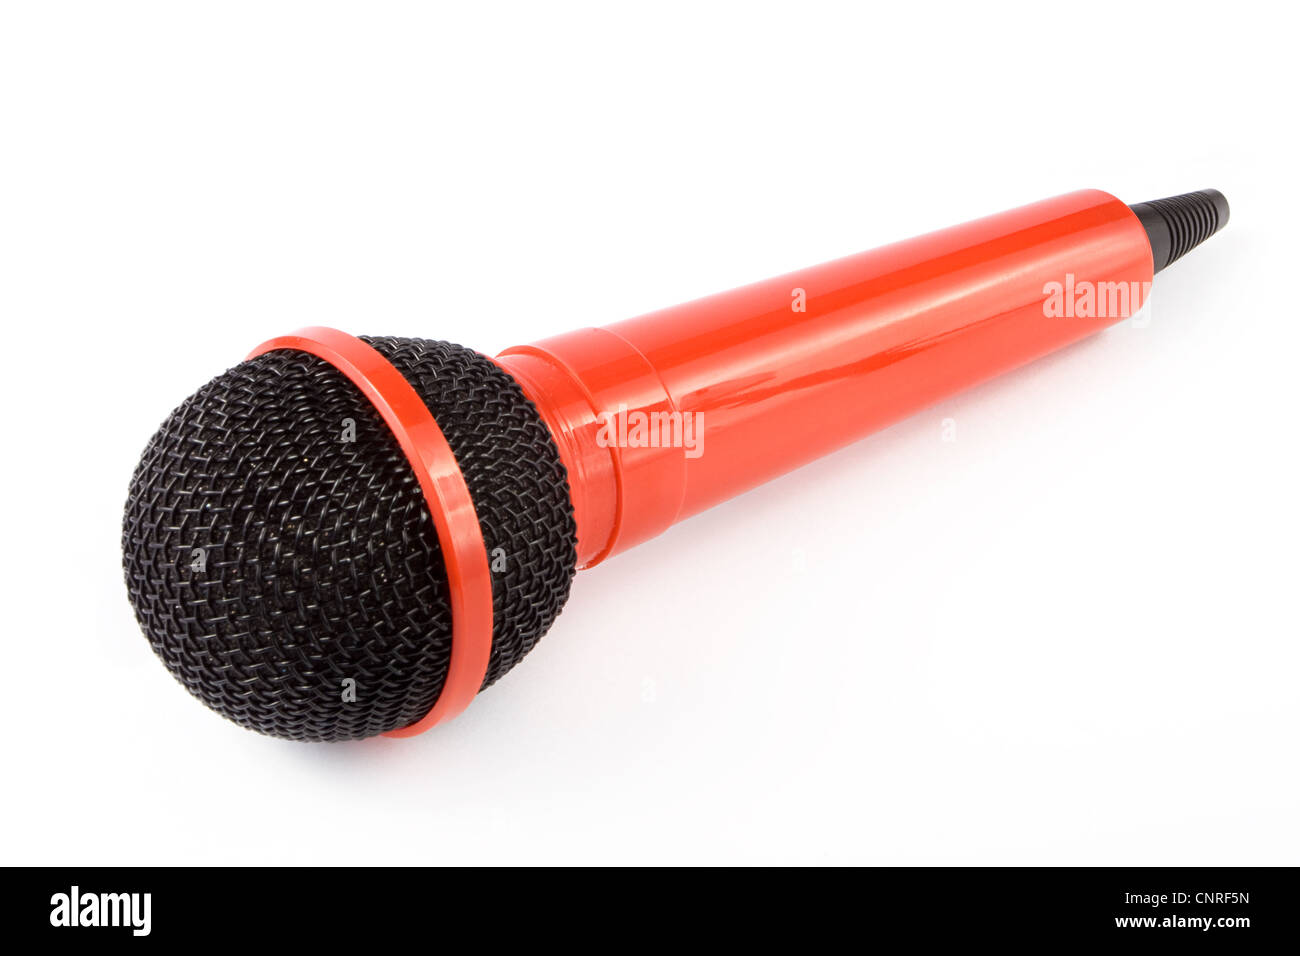 Red microphone on a white background - Stock Image